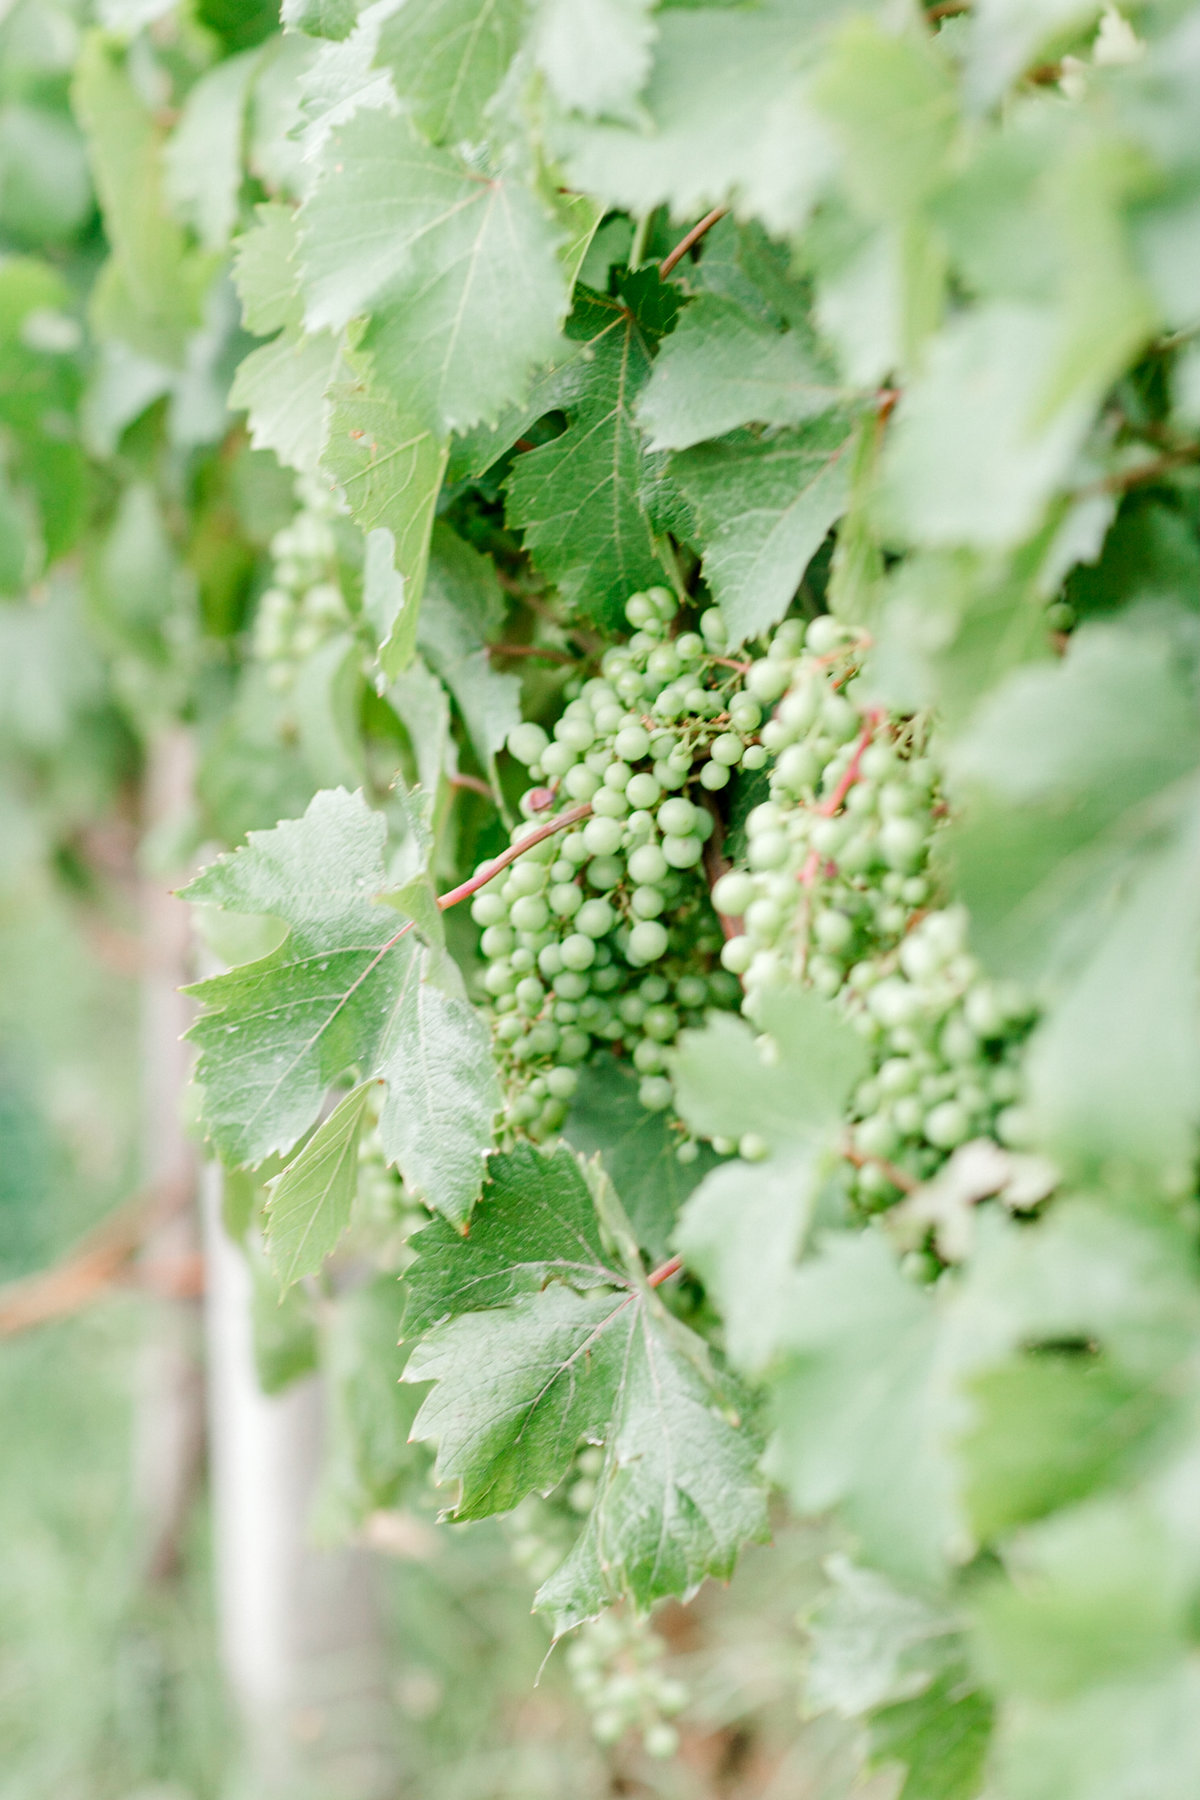 Destination-Vineyard-Italian-Wedding-New-York-Photographer-Jessica-Haley-Photo-51